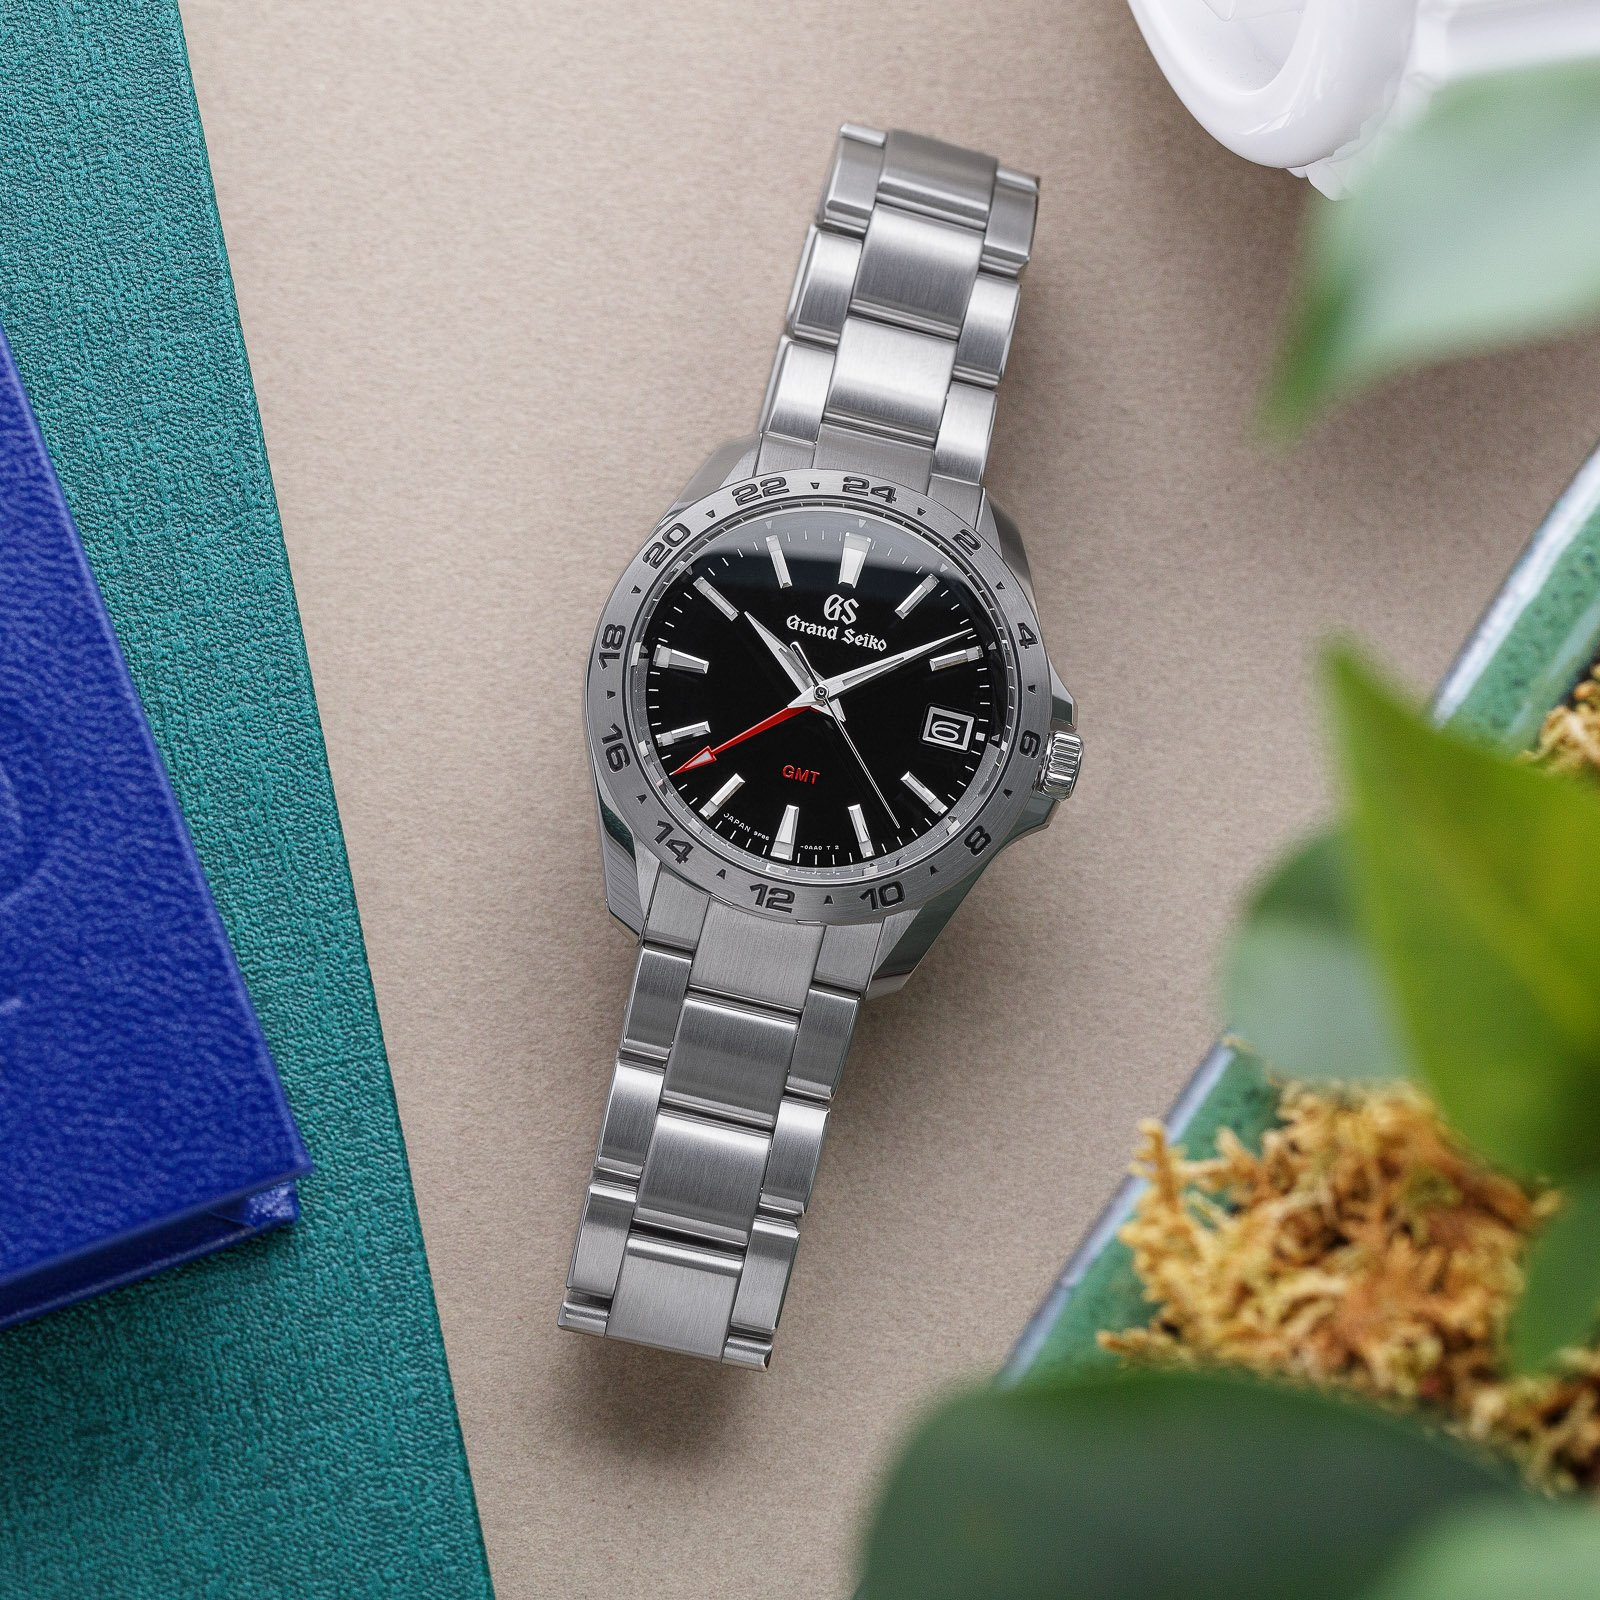 Grand Seiko SBGN003 - black dial stainless steel wristwatch atop a table.